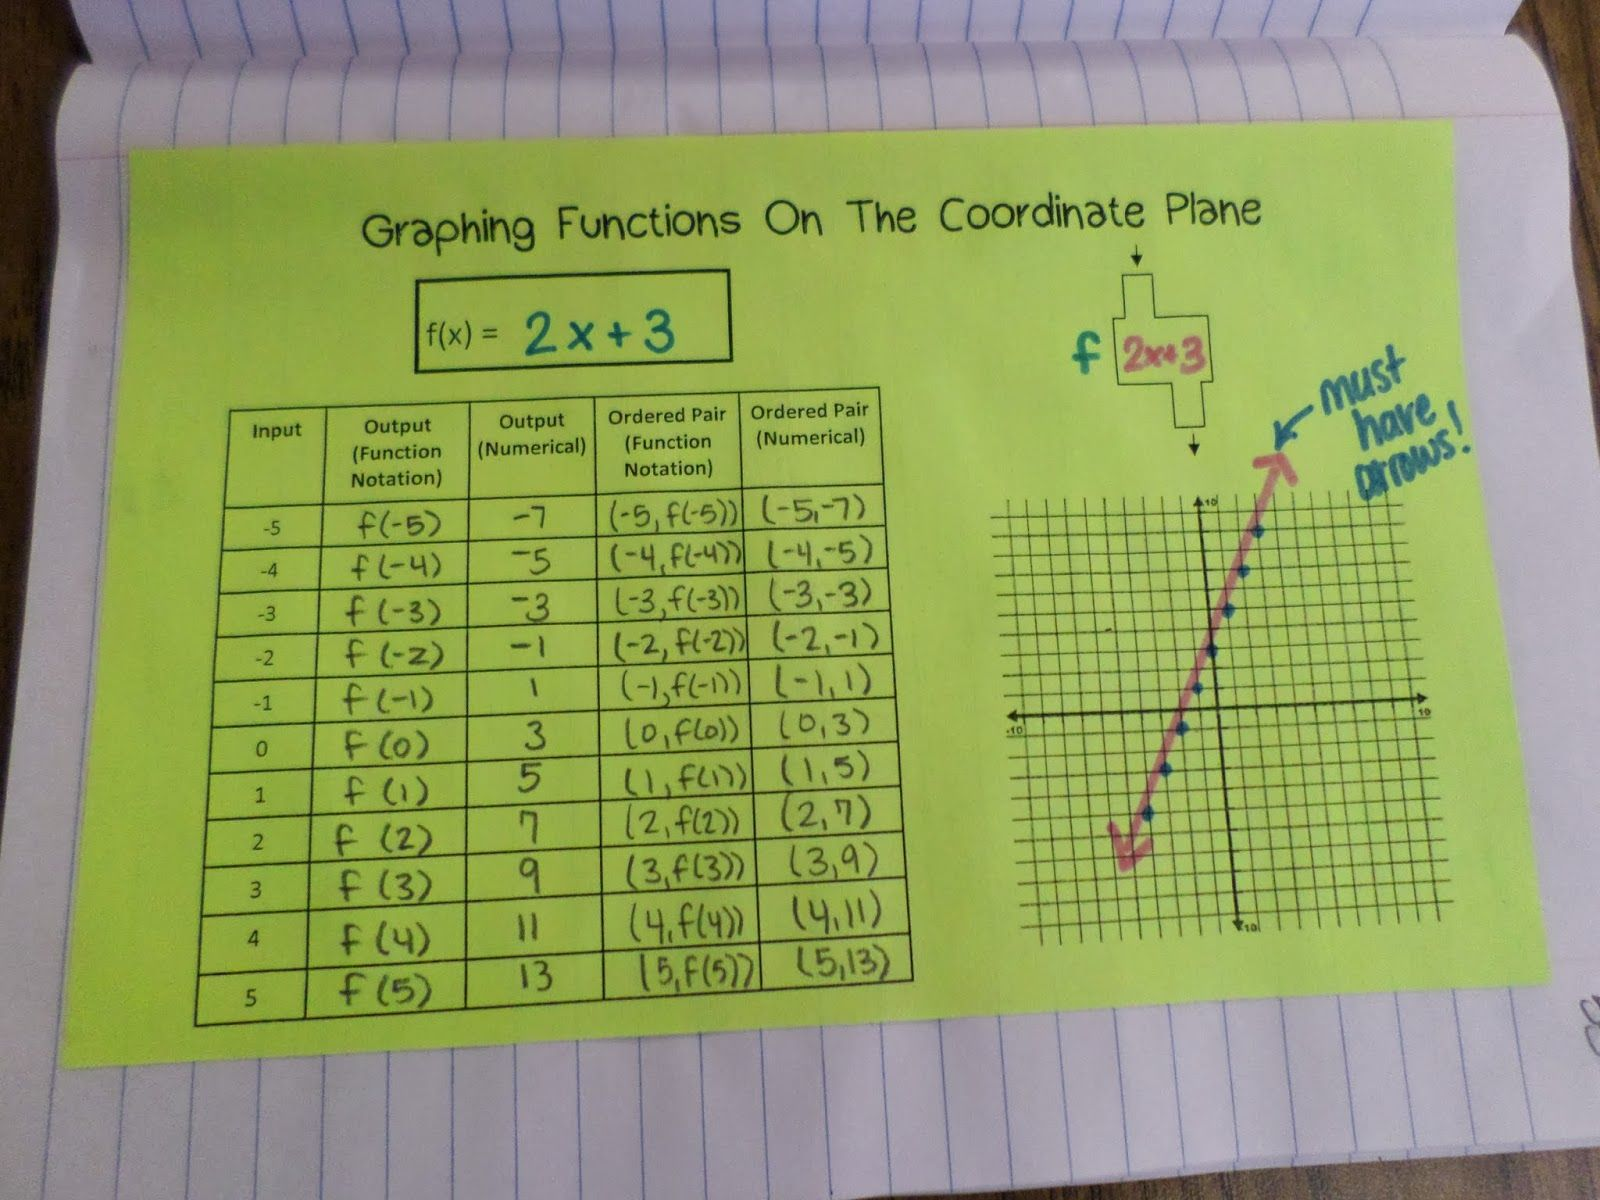 Graphing Functions On The Coordinate Plane